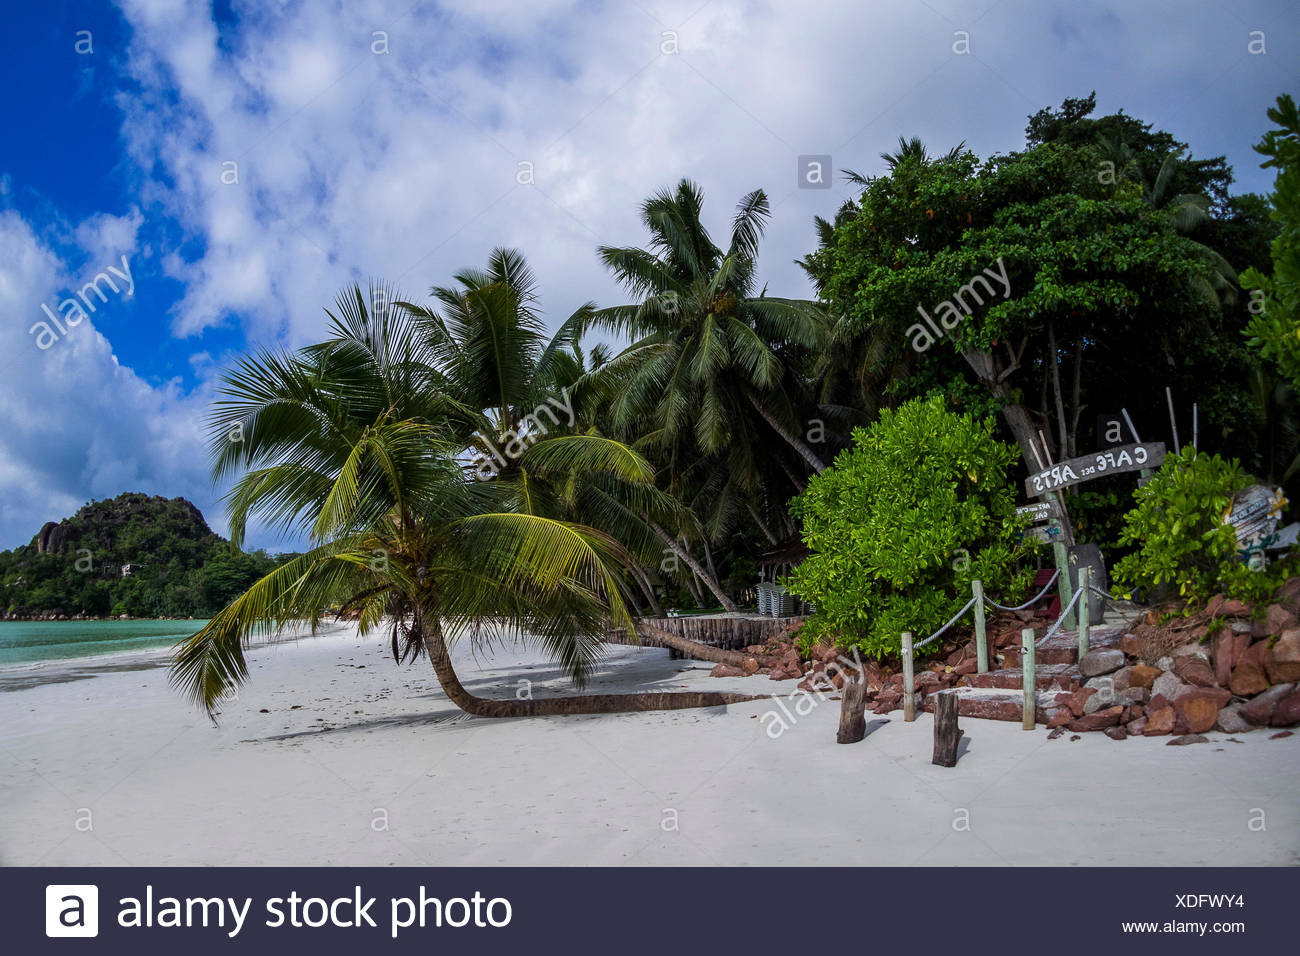 praslin in the seychelles at anse volbert / cote d'or beach Stock Photo